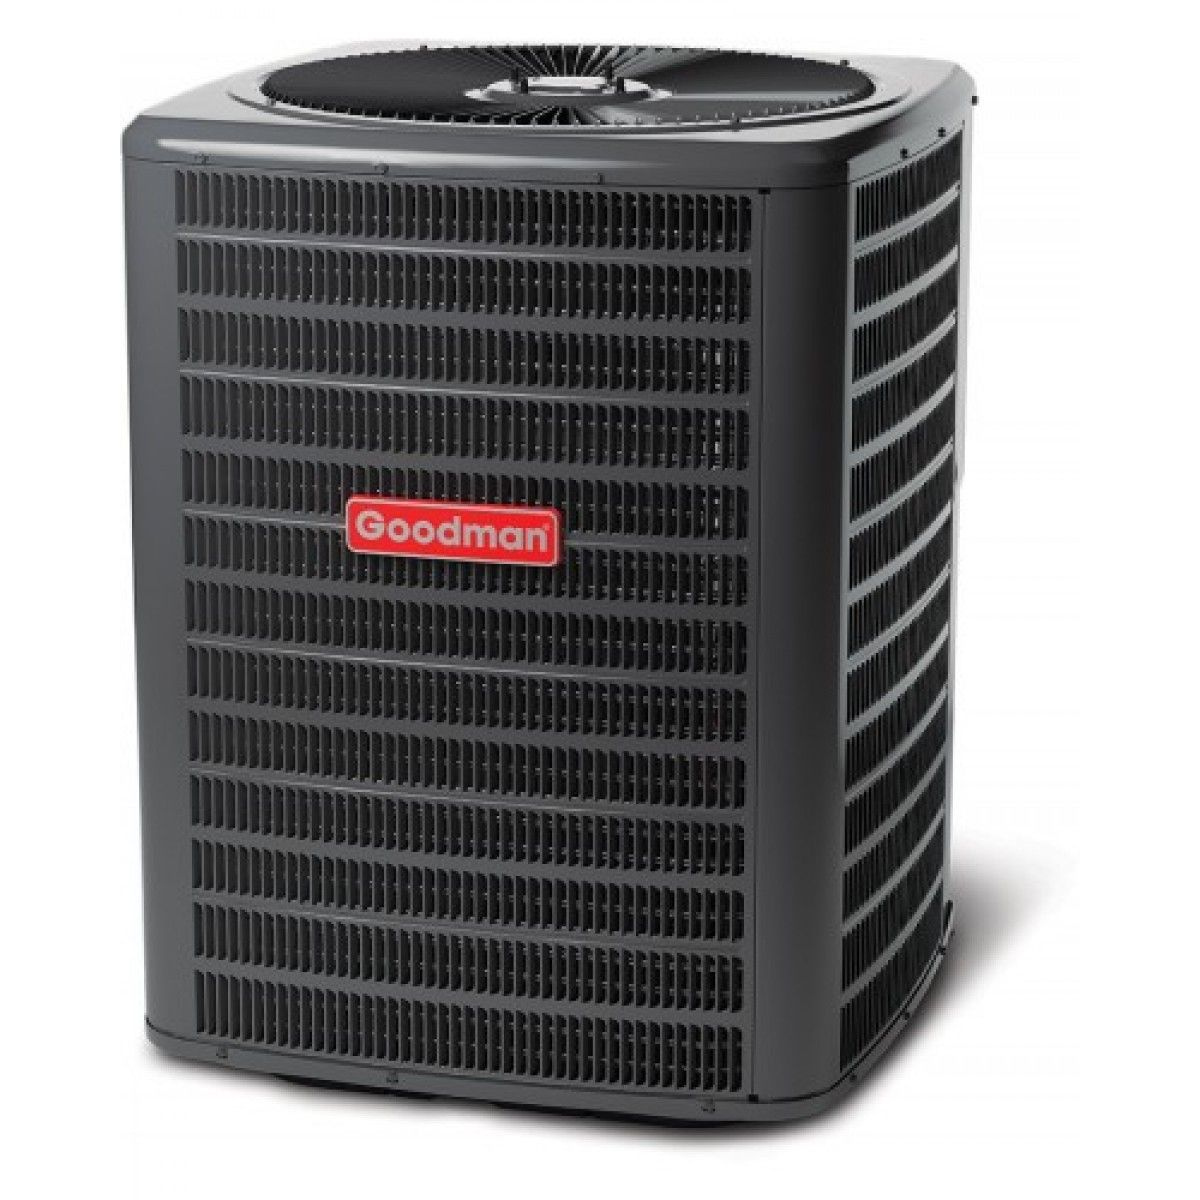 Goodman 2 0 Ton 14 Seer Heat Pump System One Time